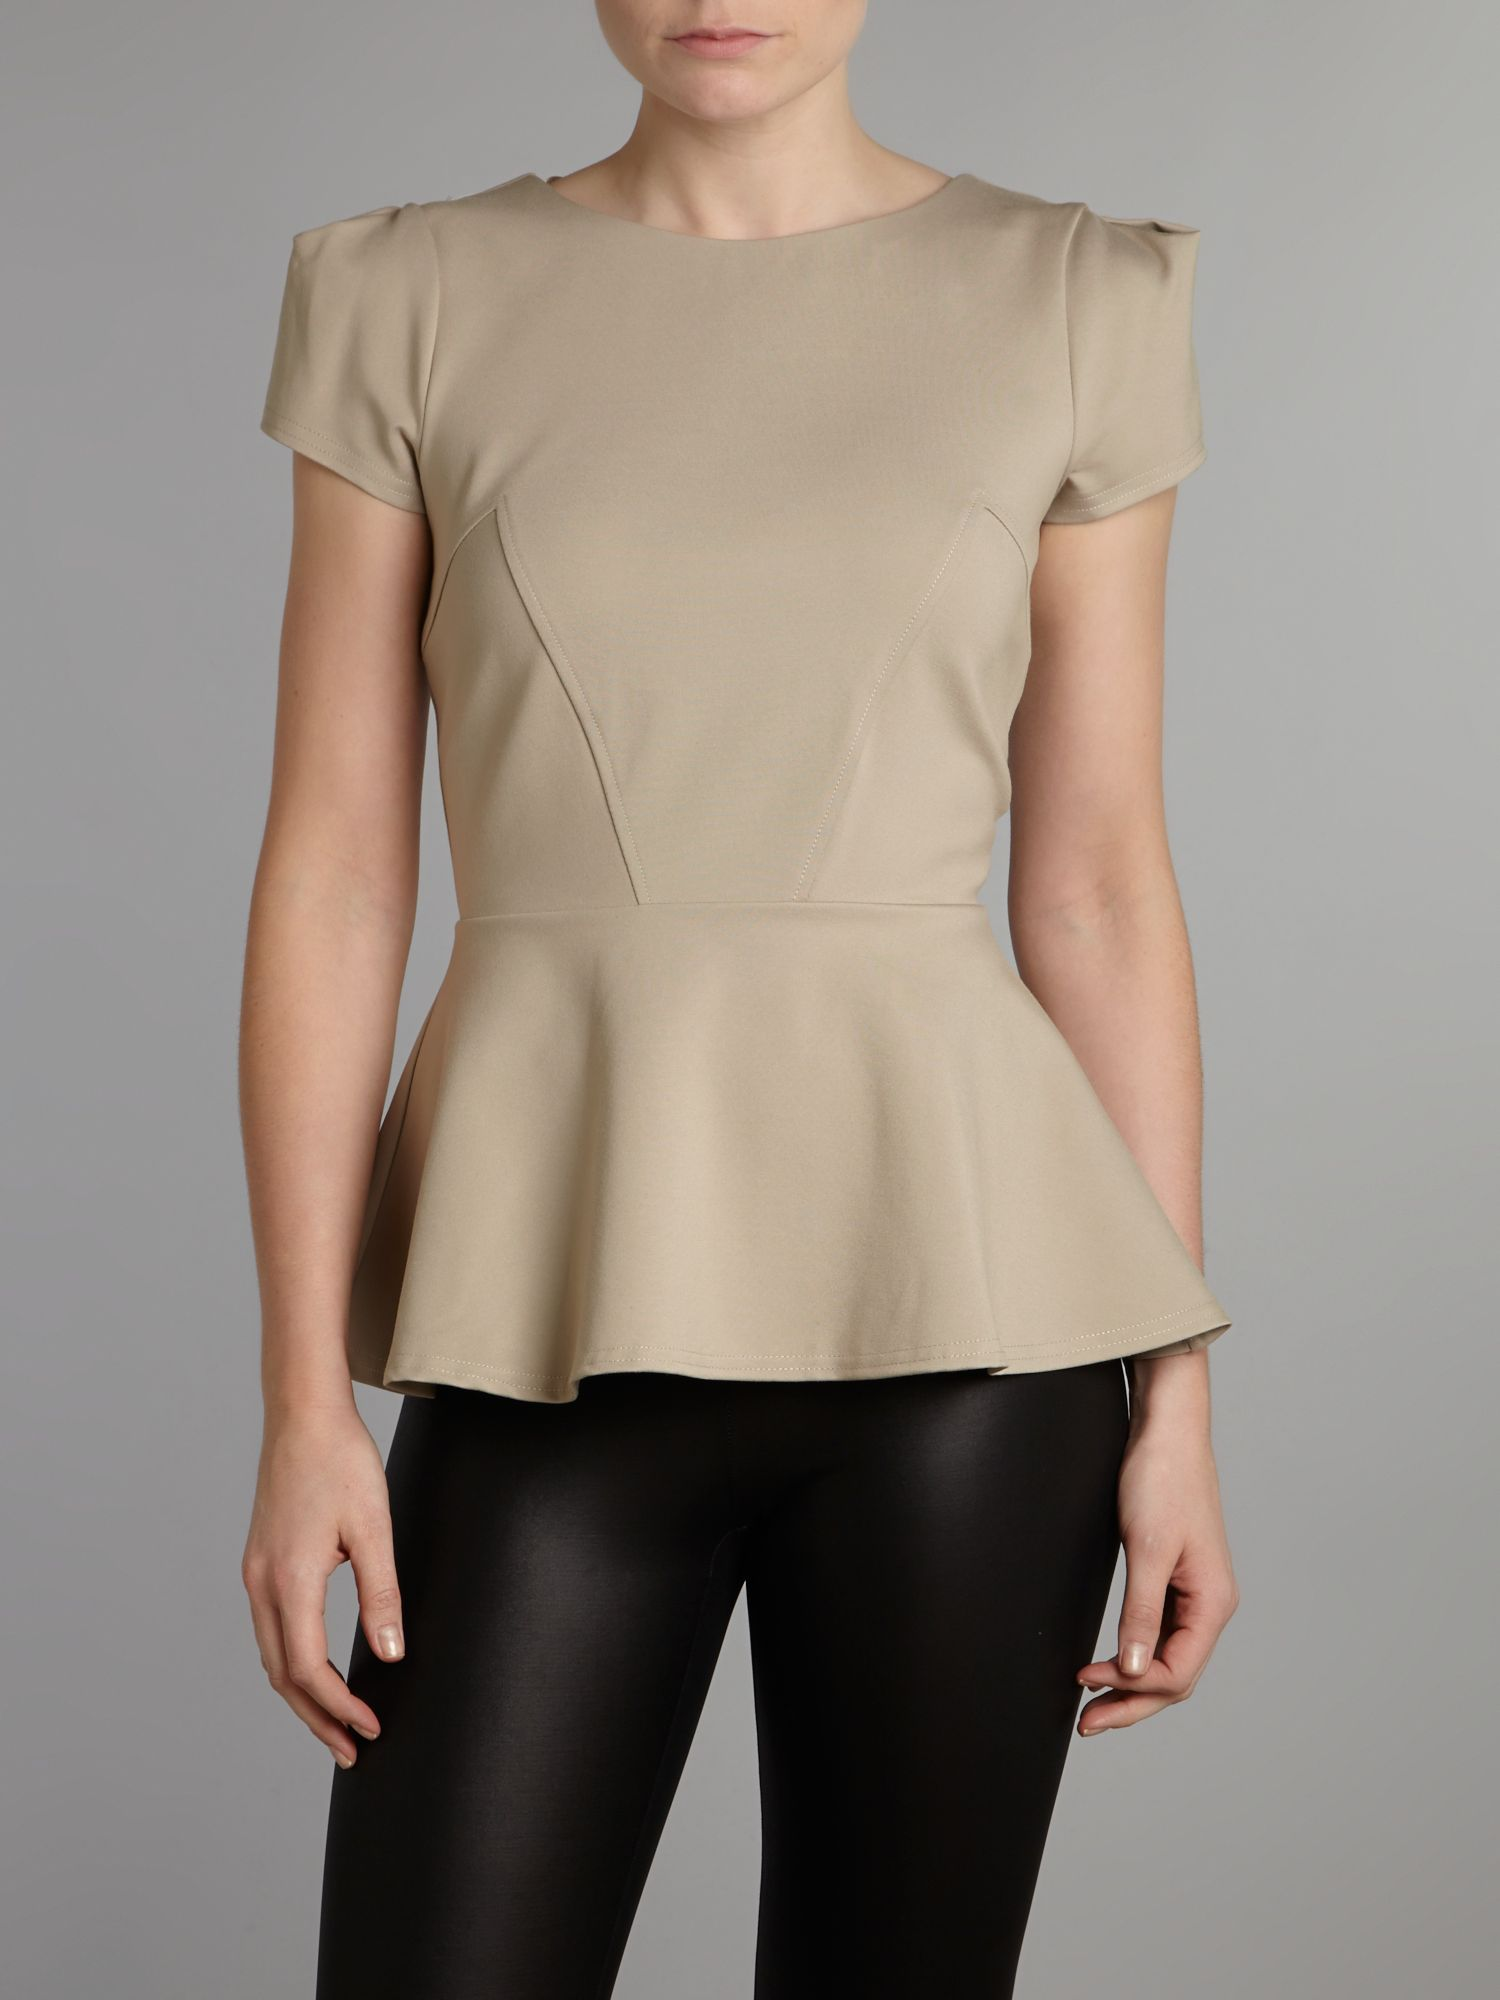 Seam detail peplum ponti top